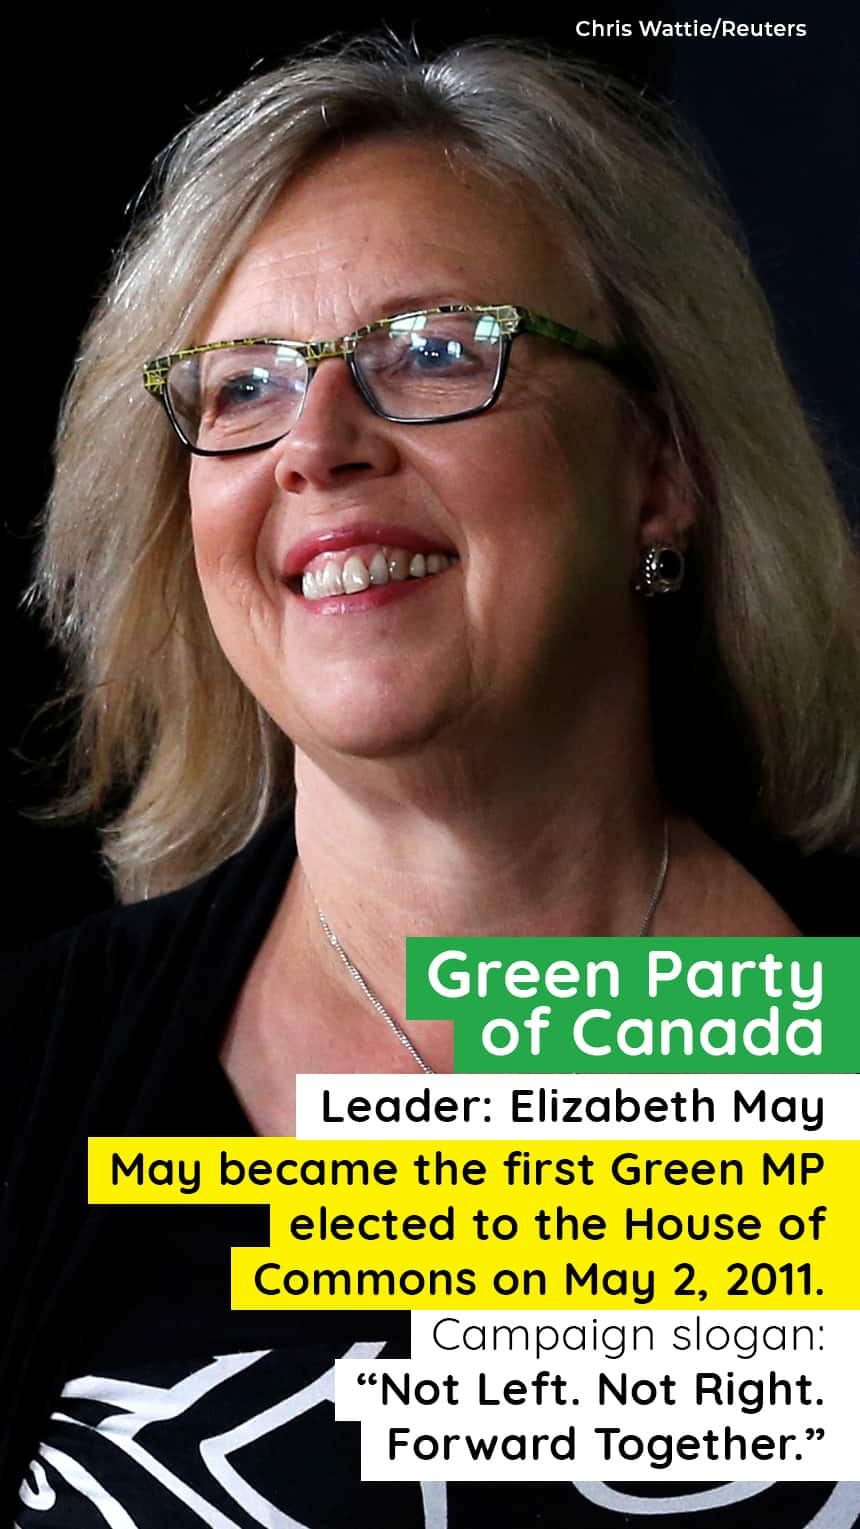 """An image of Elizabeth May with text that says, Party leader Elizabeth May - Green Party of Canada. May became the first Green MP elected to the House of Commons on May 2, 2011. Campaign slogan: """"Not Left. Not Right. Forward Together."""""""